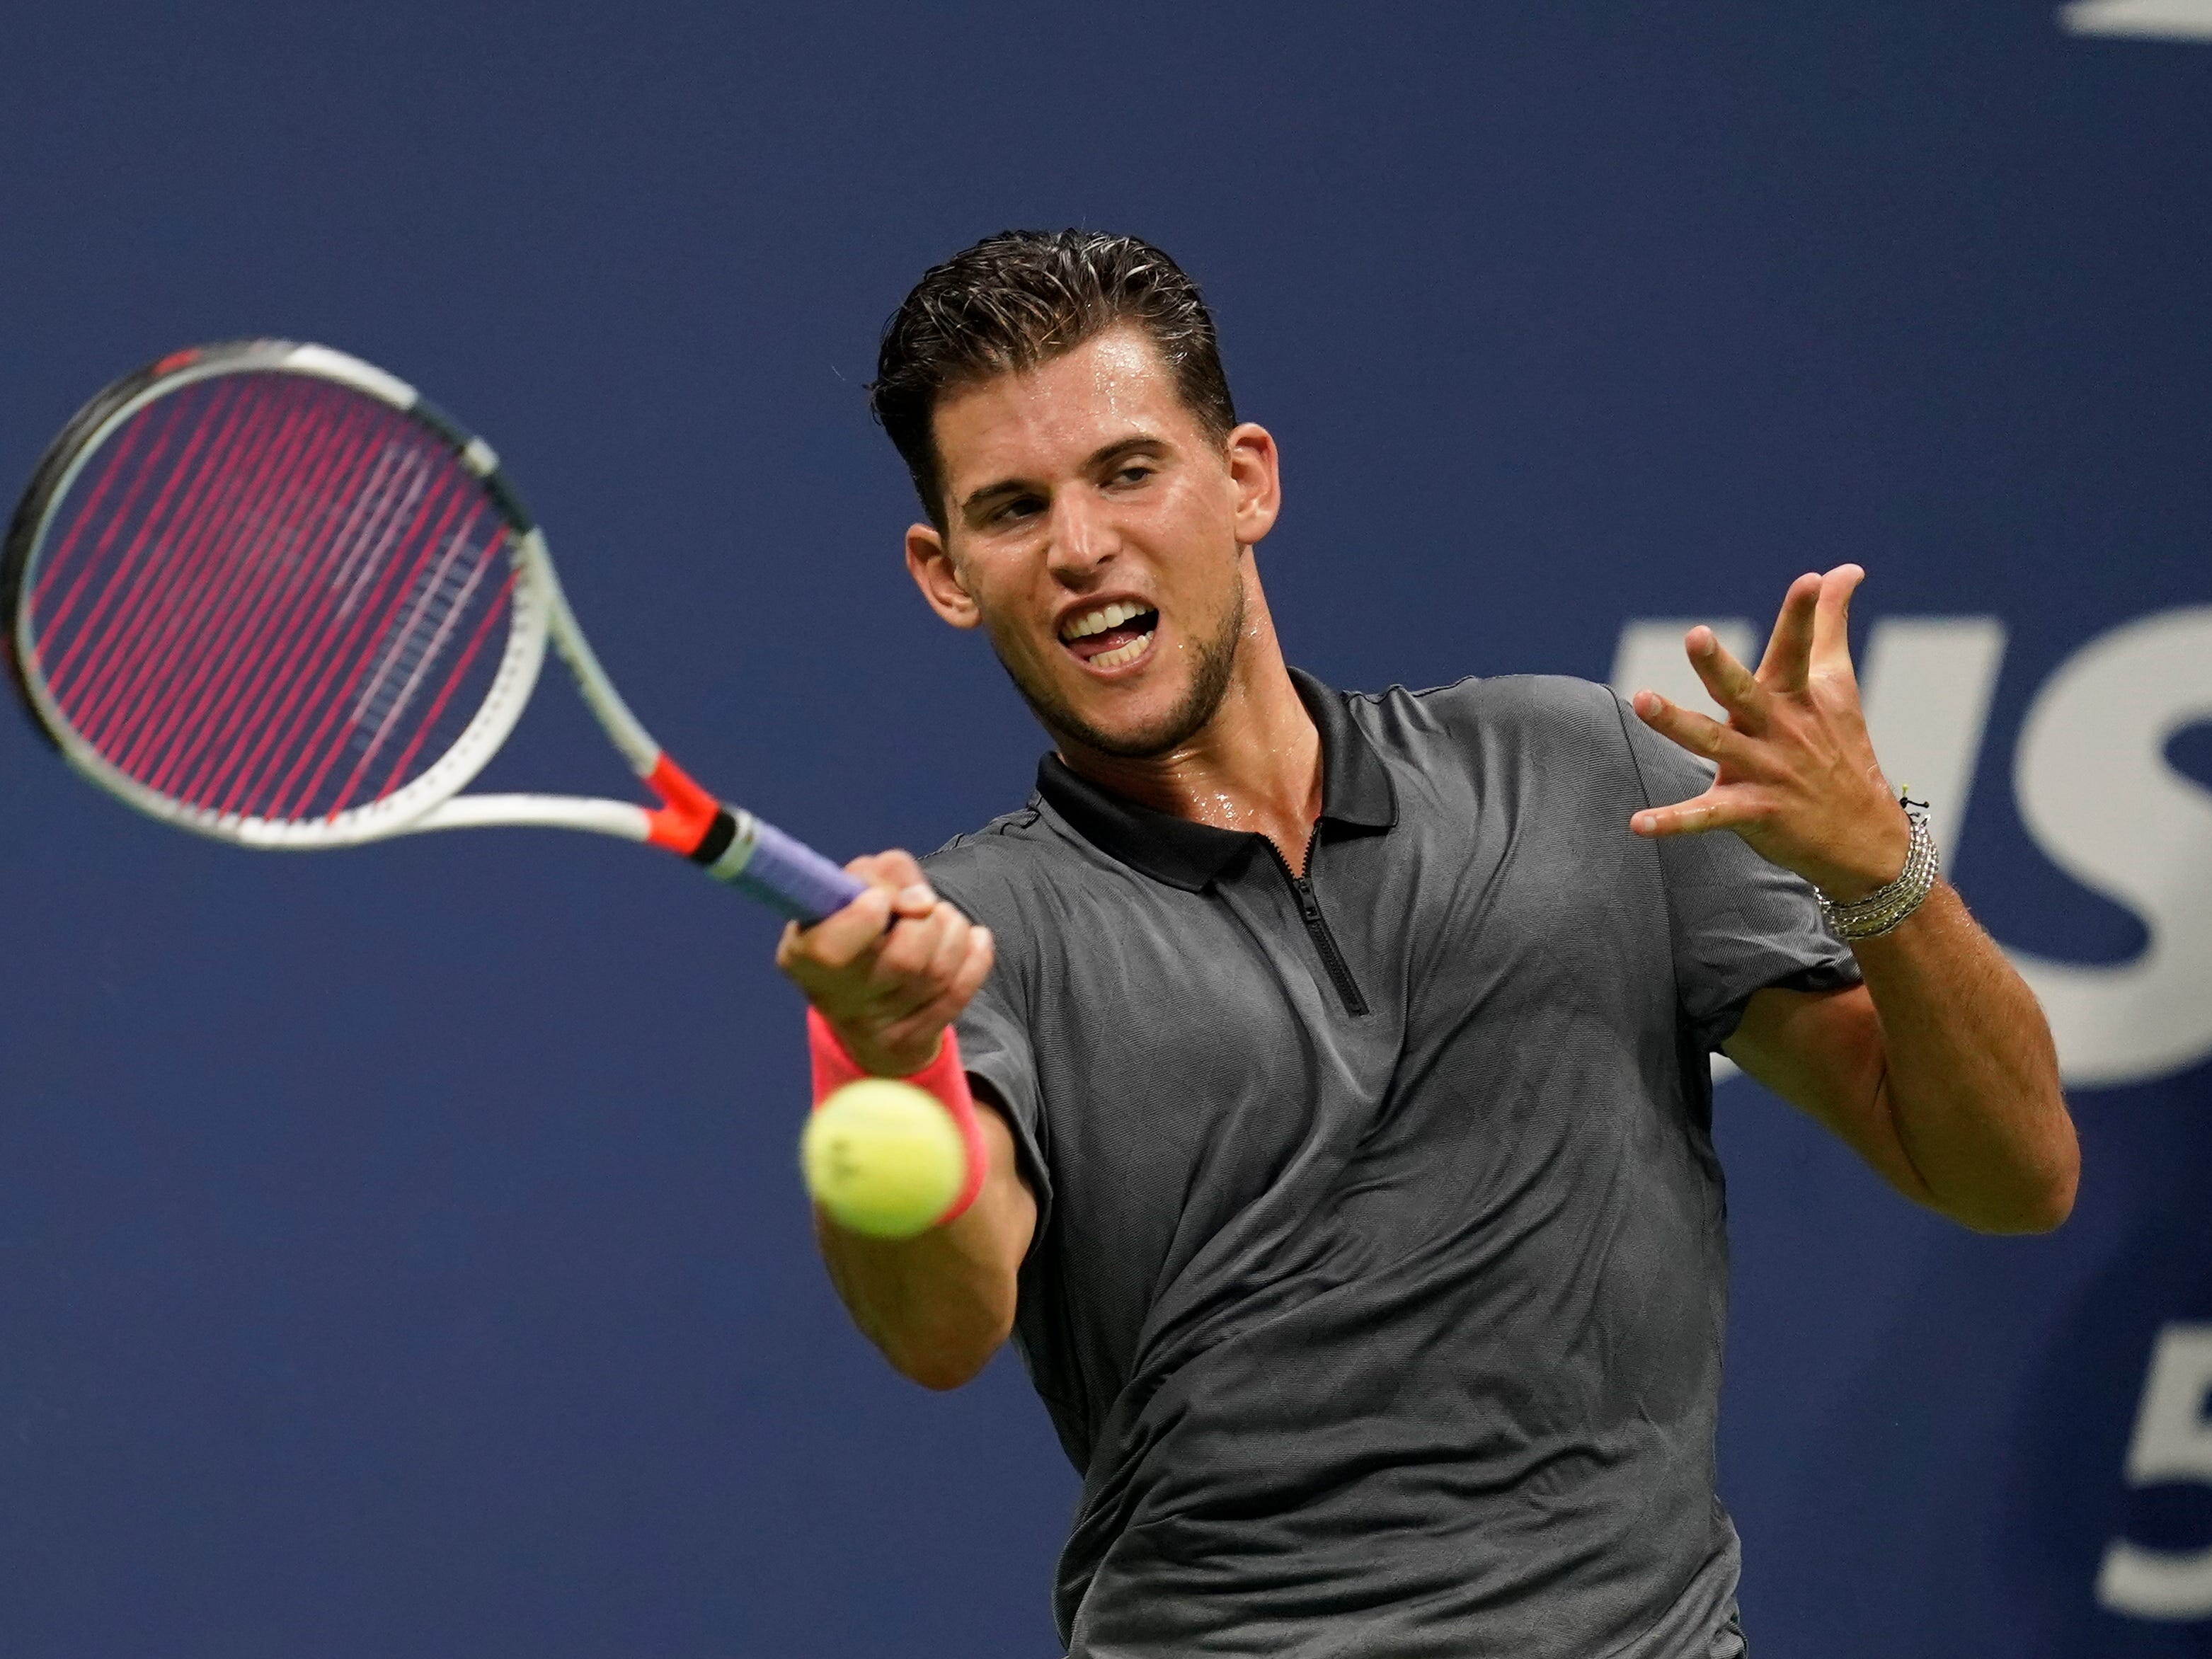 Dominic Thiem won the first set against Rafael Nadal 6-0.